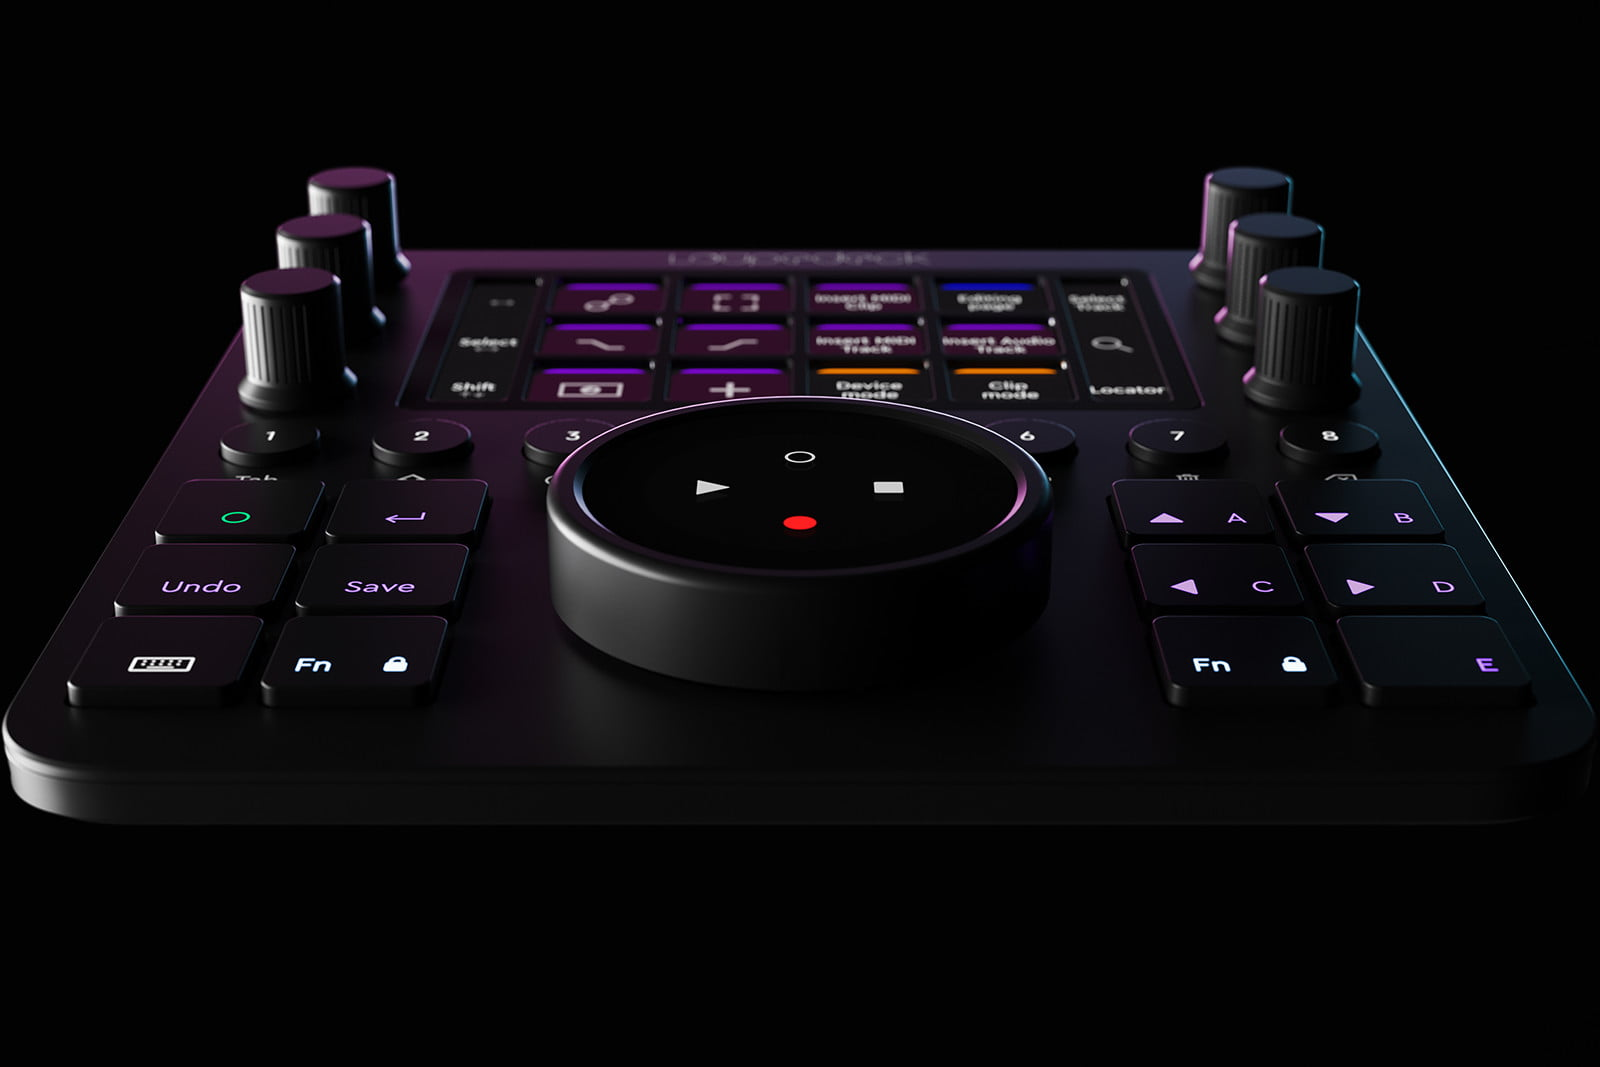 loupedeck creative tool launches ct productshots v2 cam 04 hires